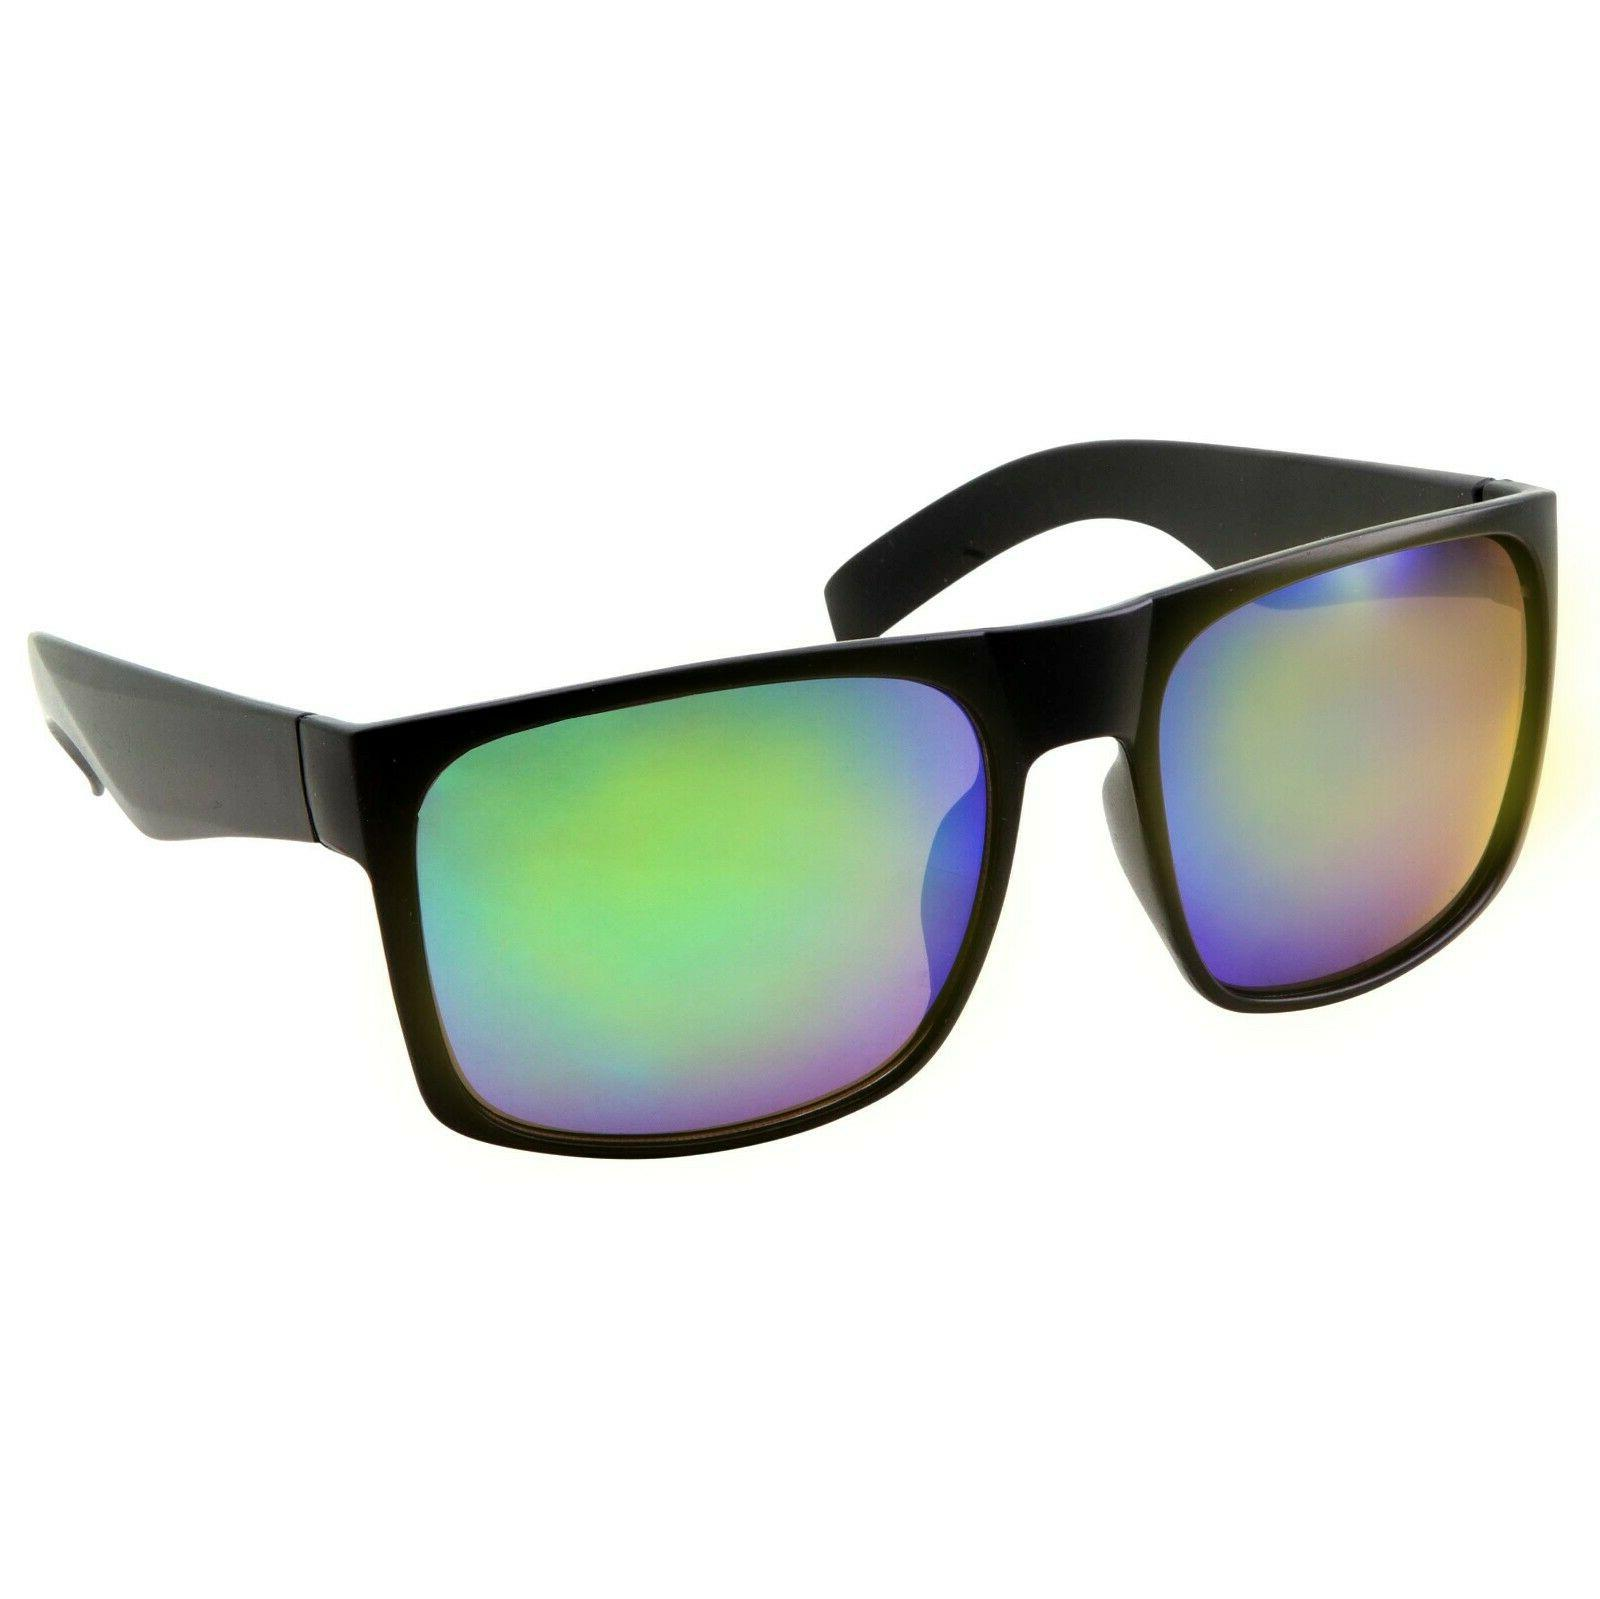 3 XL SUNGLASSES WIDE Color Mirror Glasses Extra Large